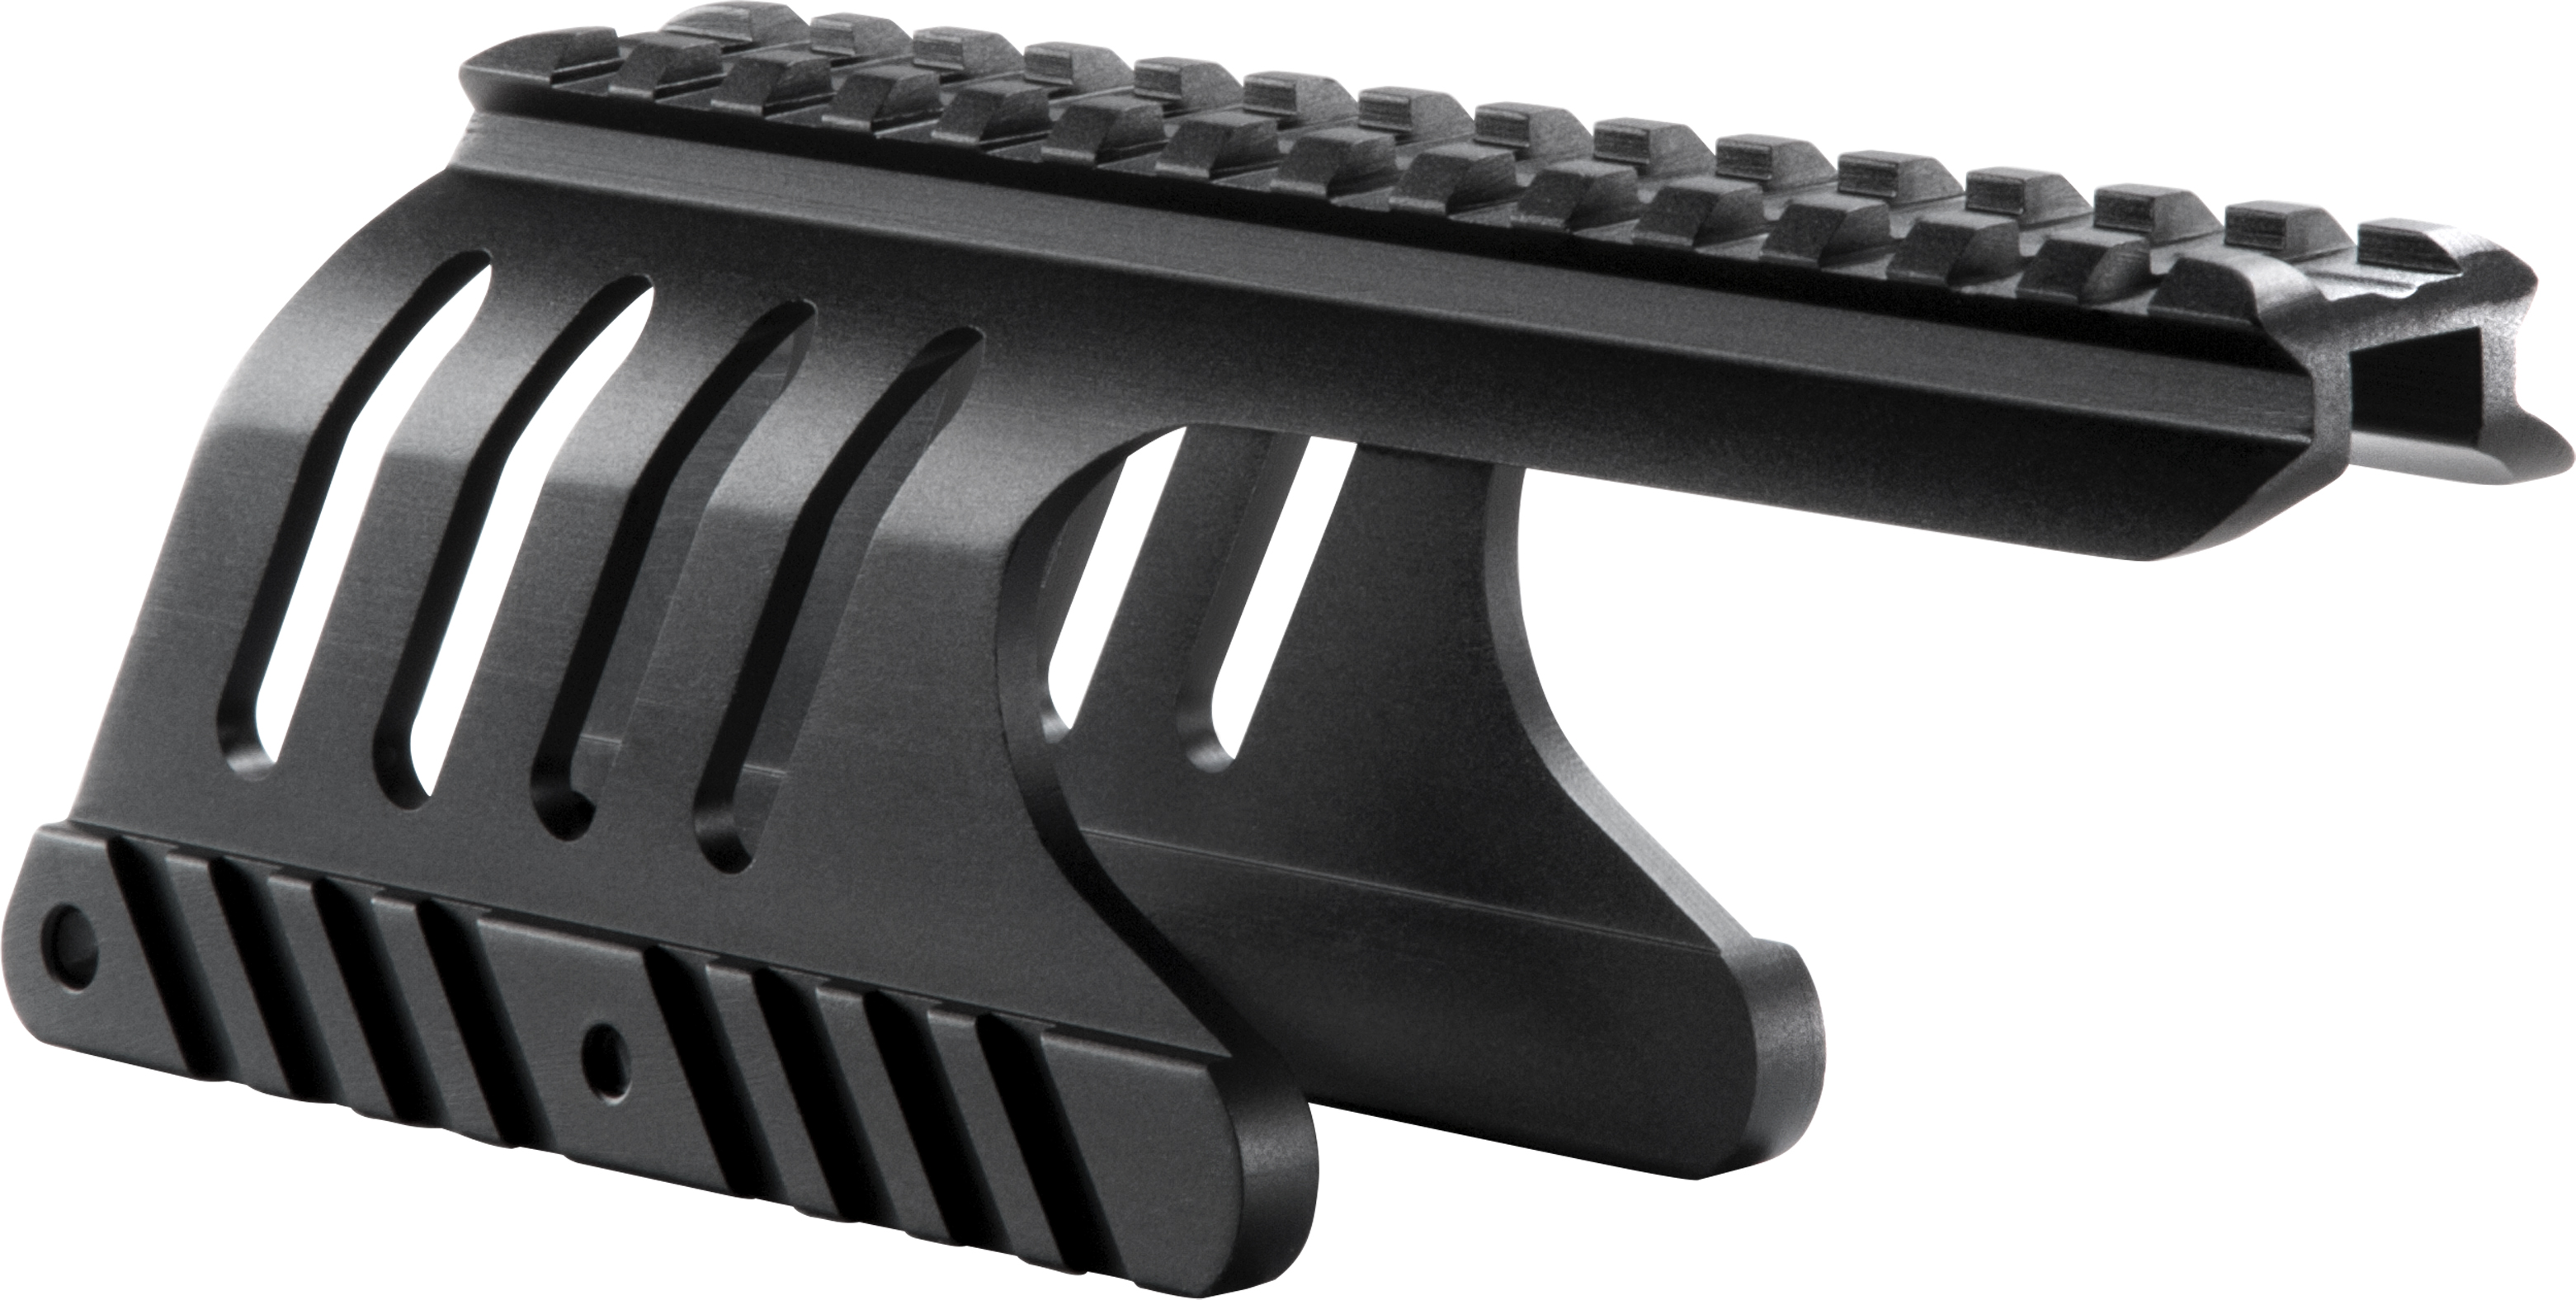 Barska Remington 870 Tactical Mount at Sears.com